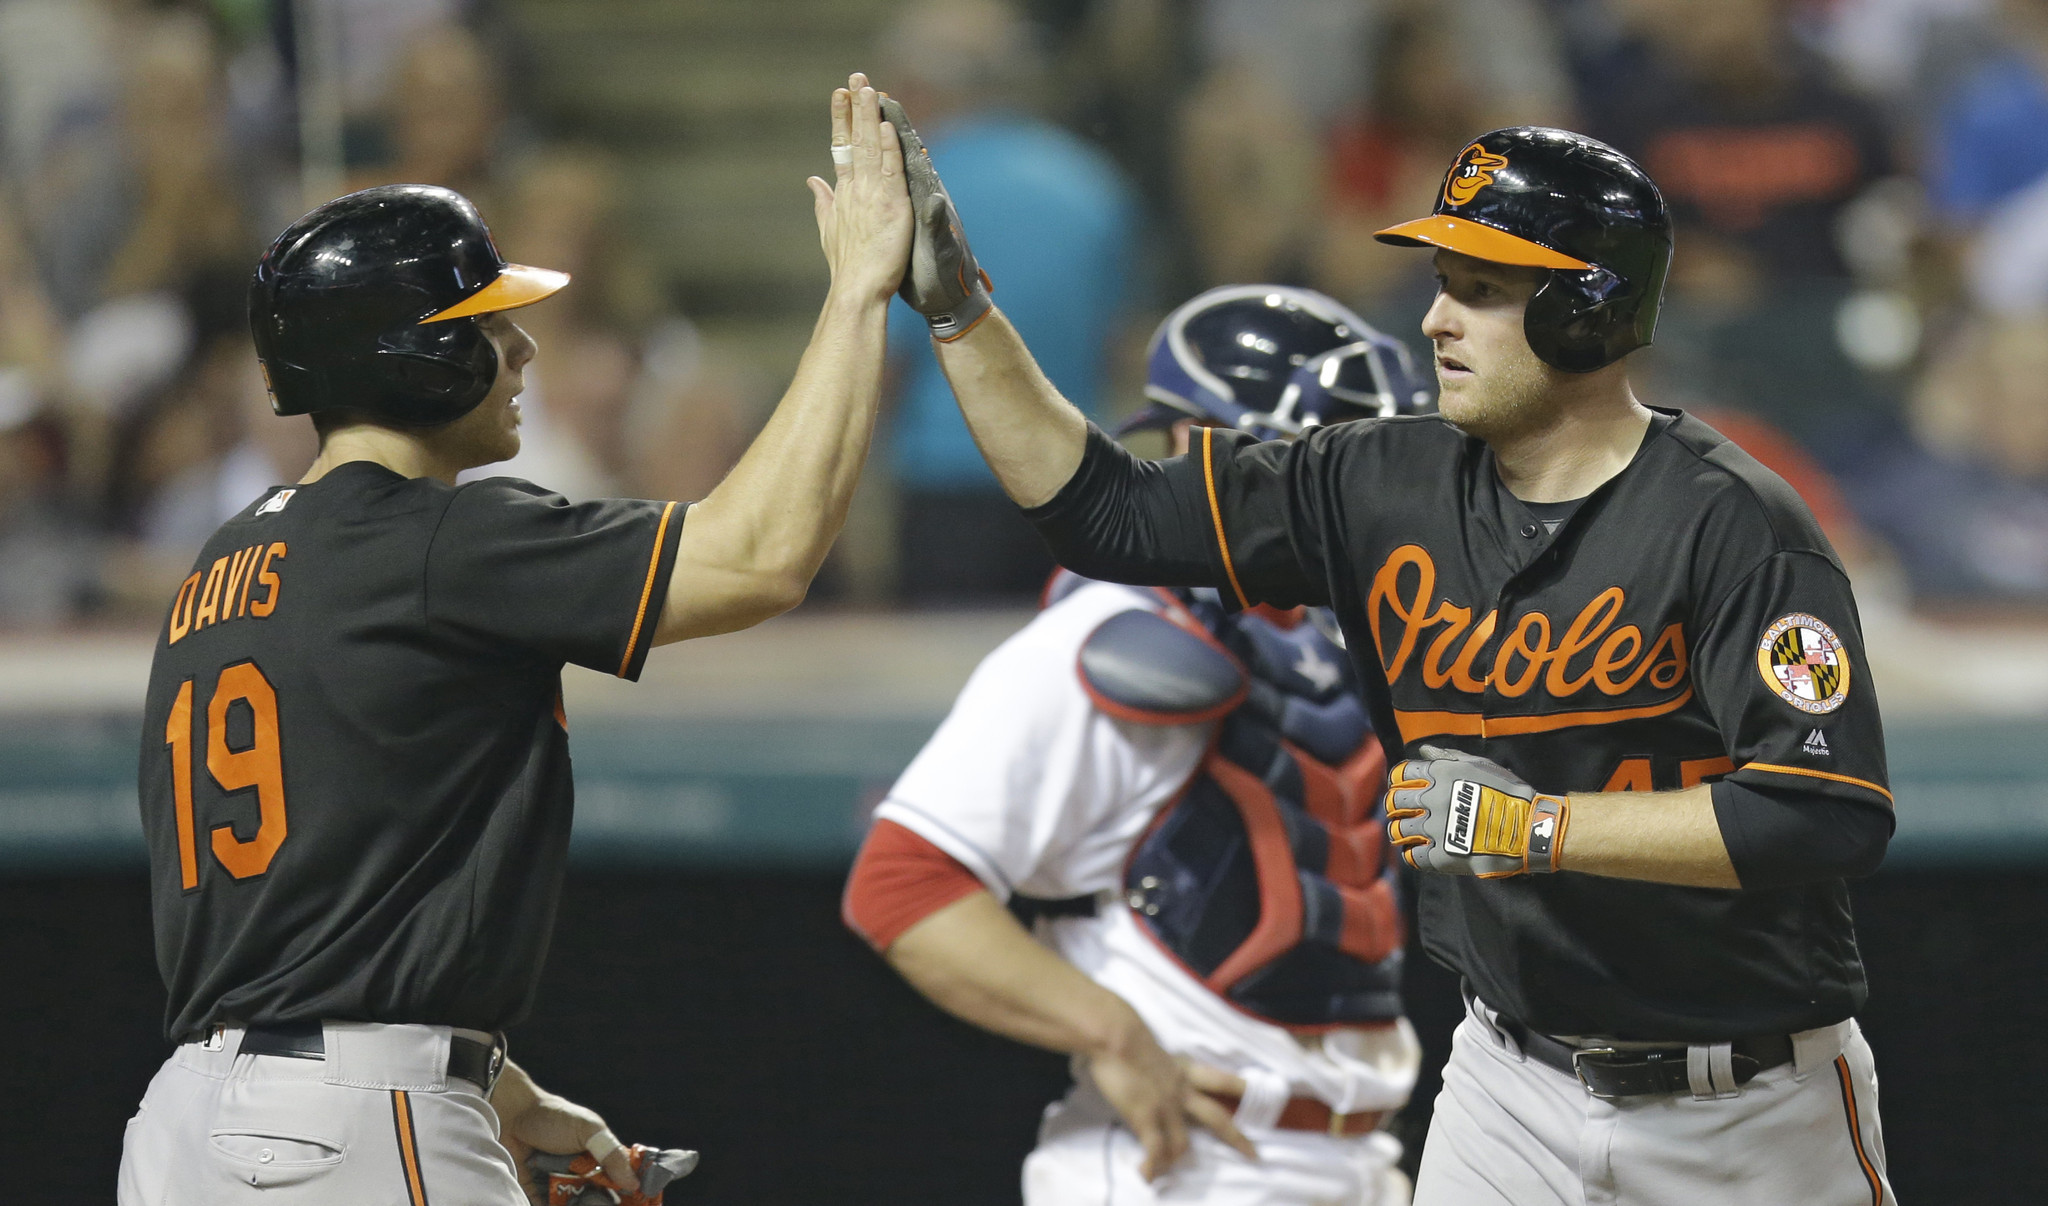 Bal-orioles-recap-bats-wake-up-birds-beat-indians-to-snap-4-game-skid-20160527